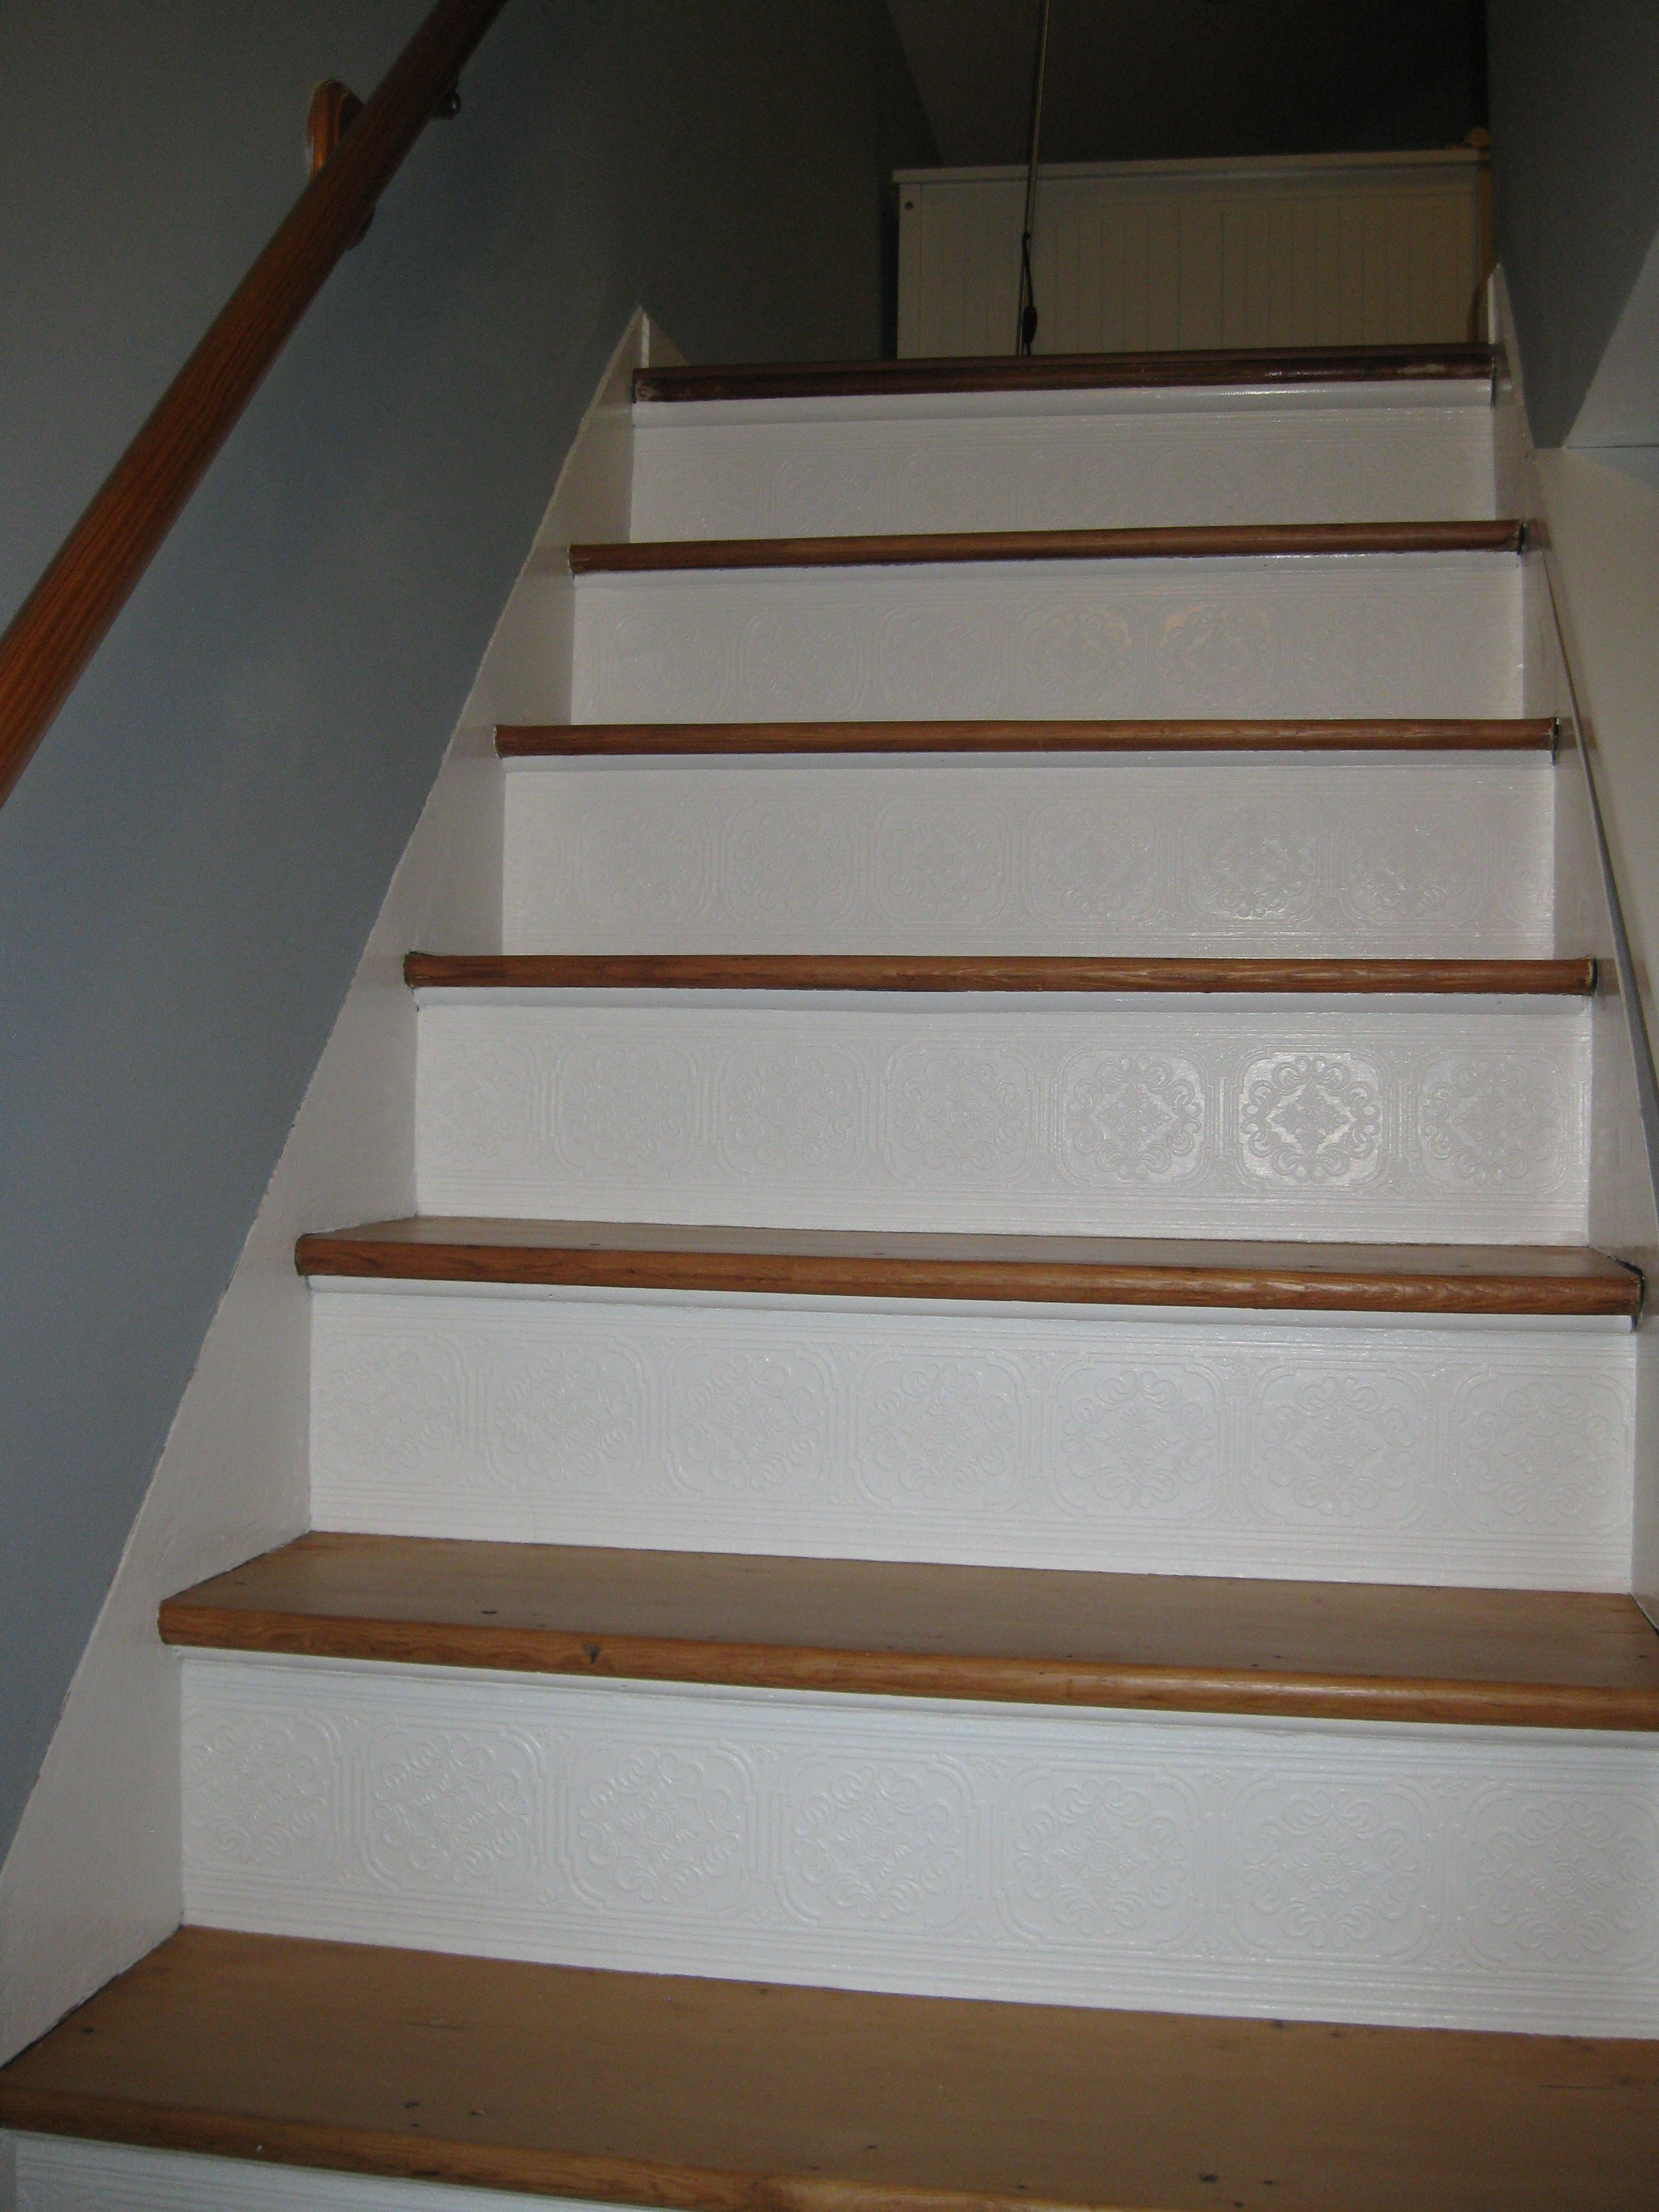 The Finished Stairs 3 Rolls Of Paintable Textured Wallpaper | Wood Stair Stringers Lowes | Deck Stair Tread | Pressure Treated Pine Stair | Severe Weather | Outdoor Stair | Stair Railing